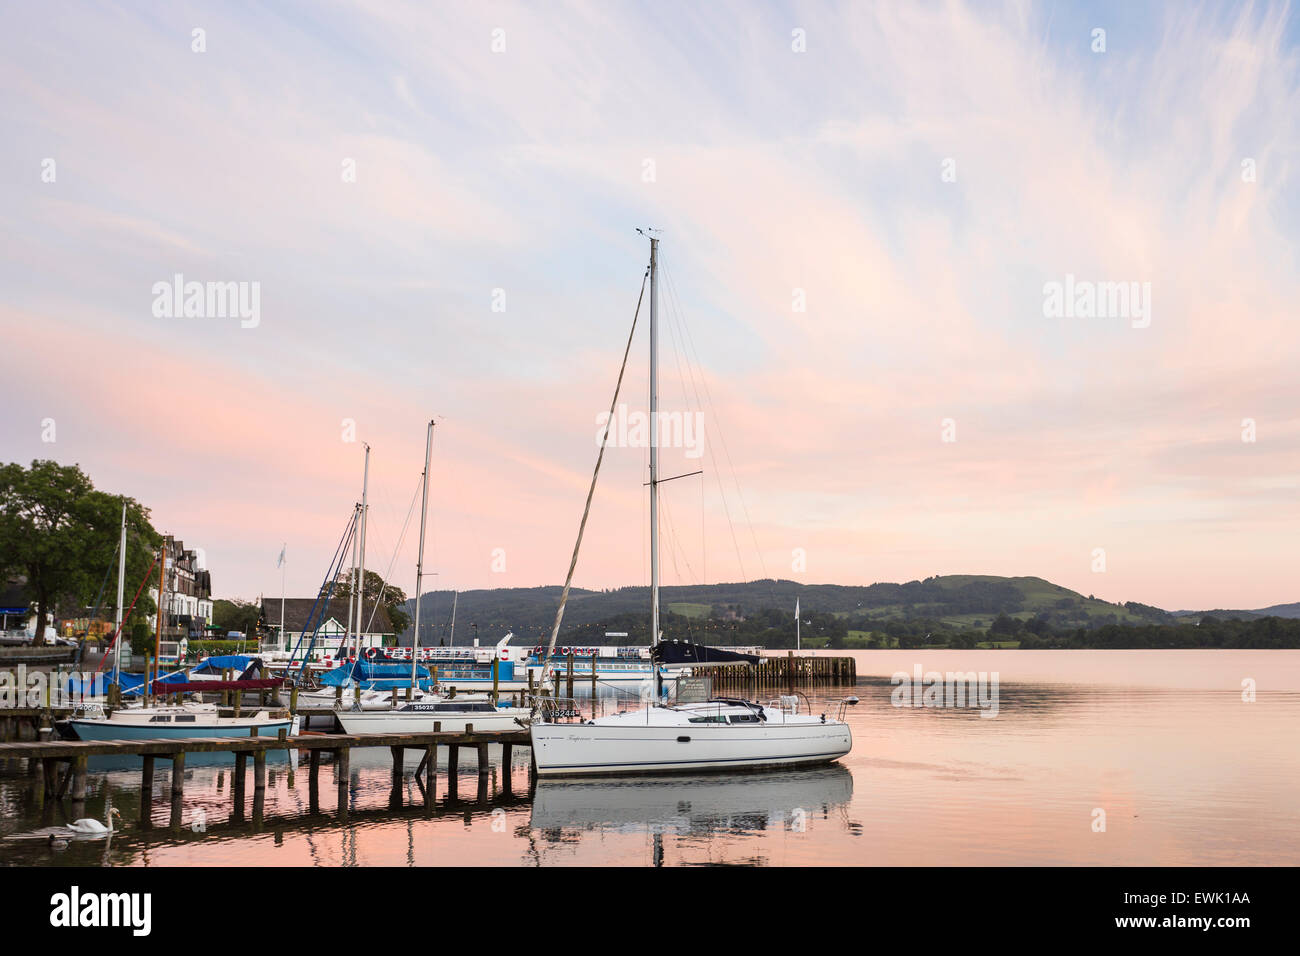 Boats (yachts) moored at Ambleside Pier, Waterhead, Lake Windermere, English Lake District, Cumbria in early evening - Stock Image